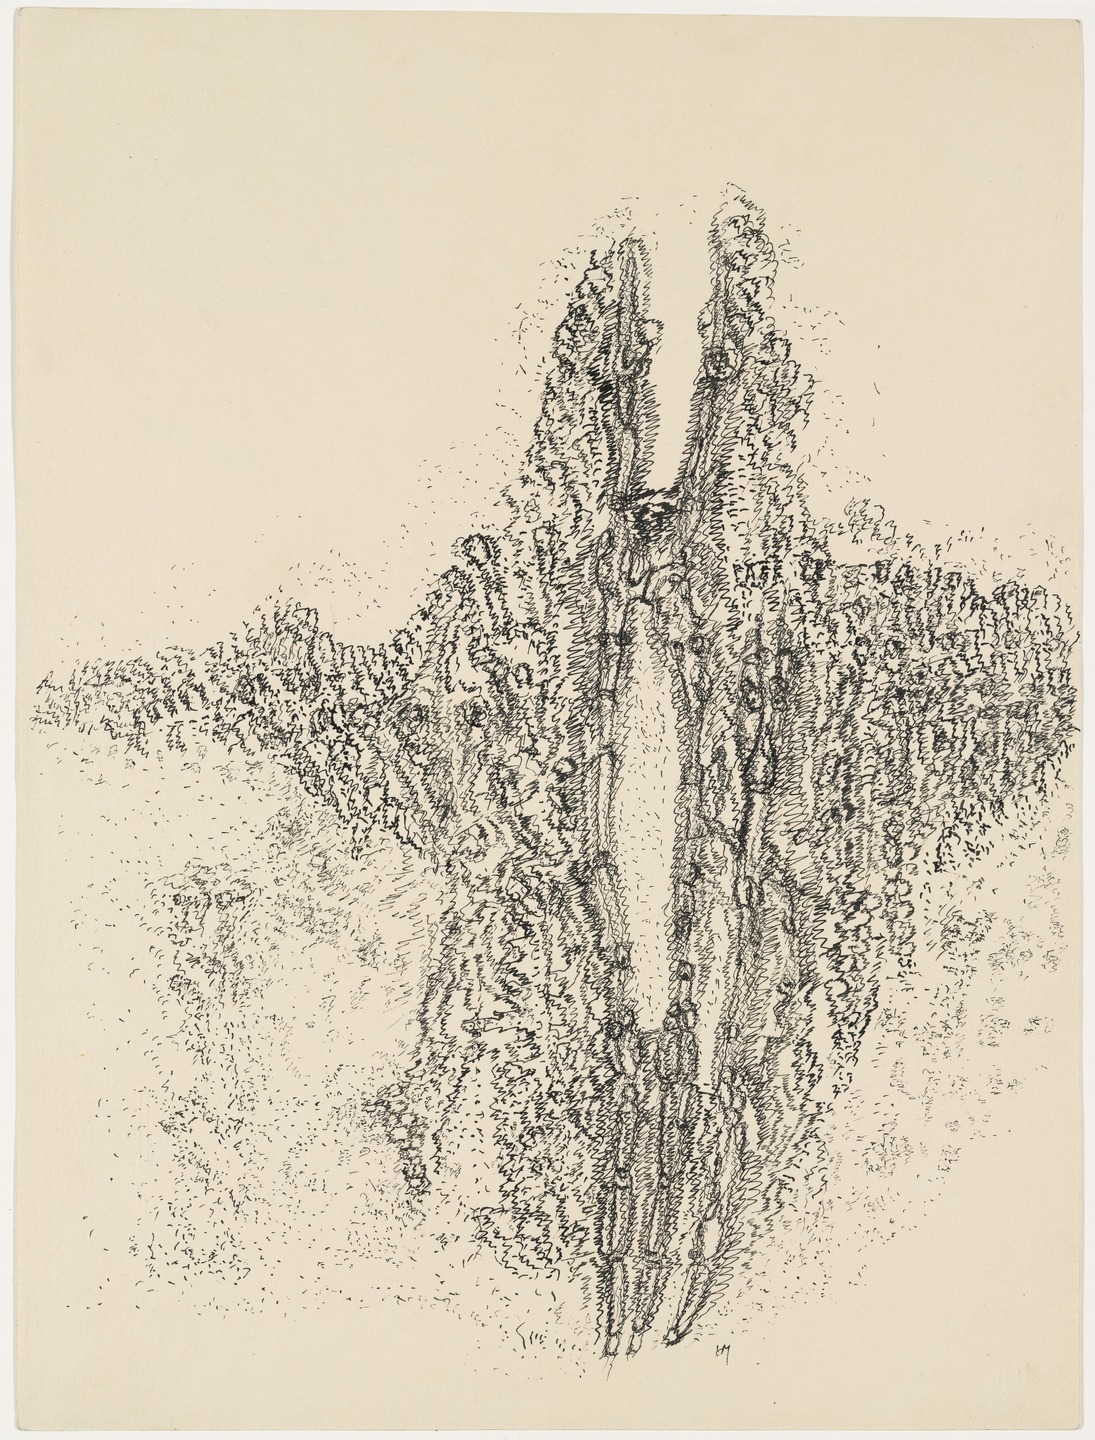 Henri Michaux Mescaline Drawing (1960)